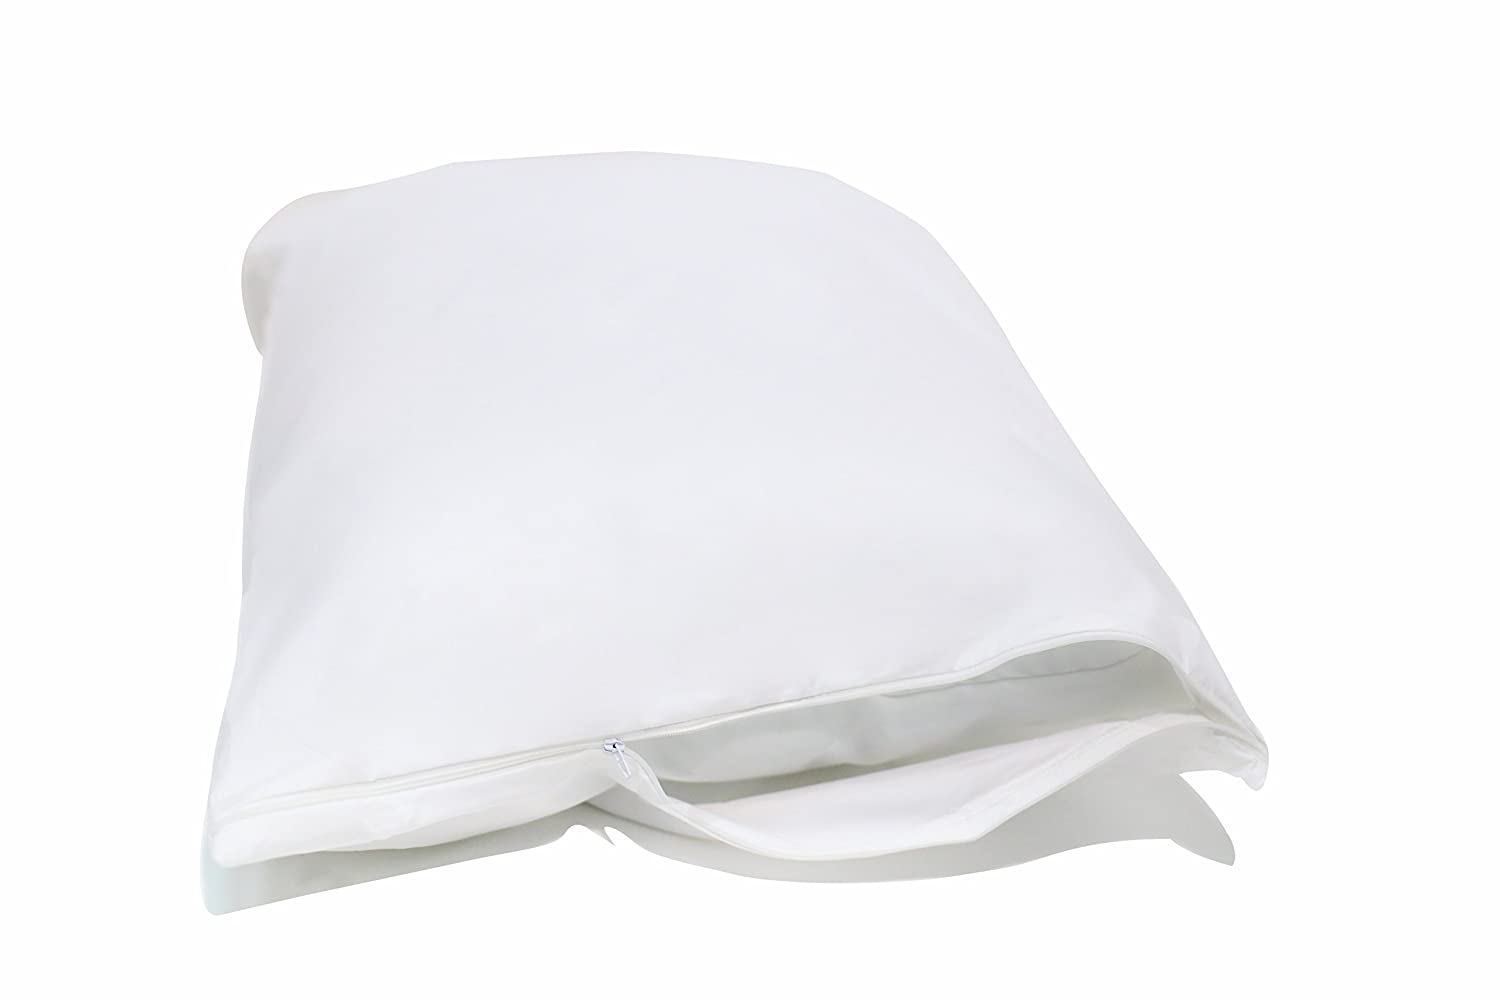 National Allergy Queen 2 Pack Allergy and Bed Bug Proof Pillow Cover, WHITE